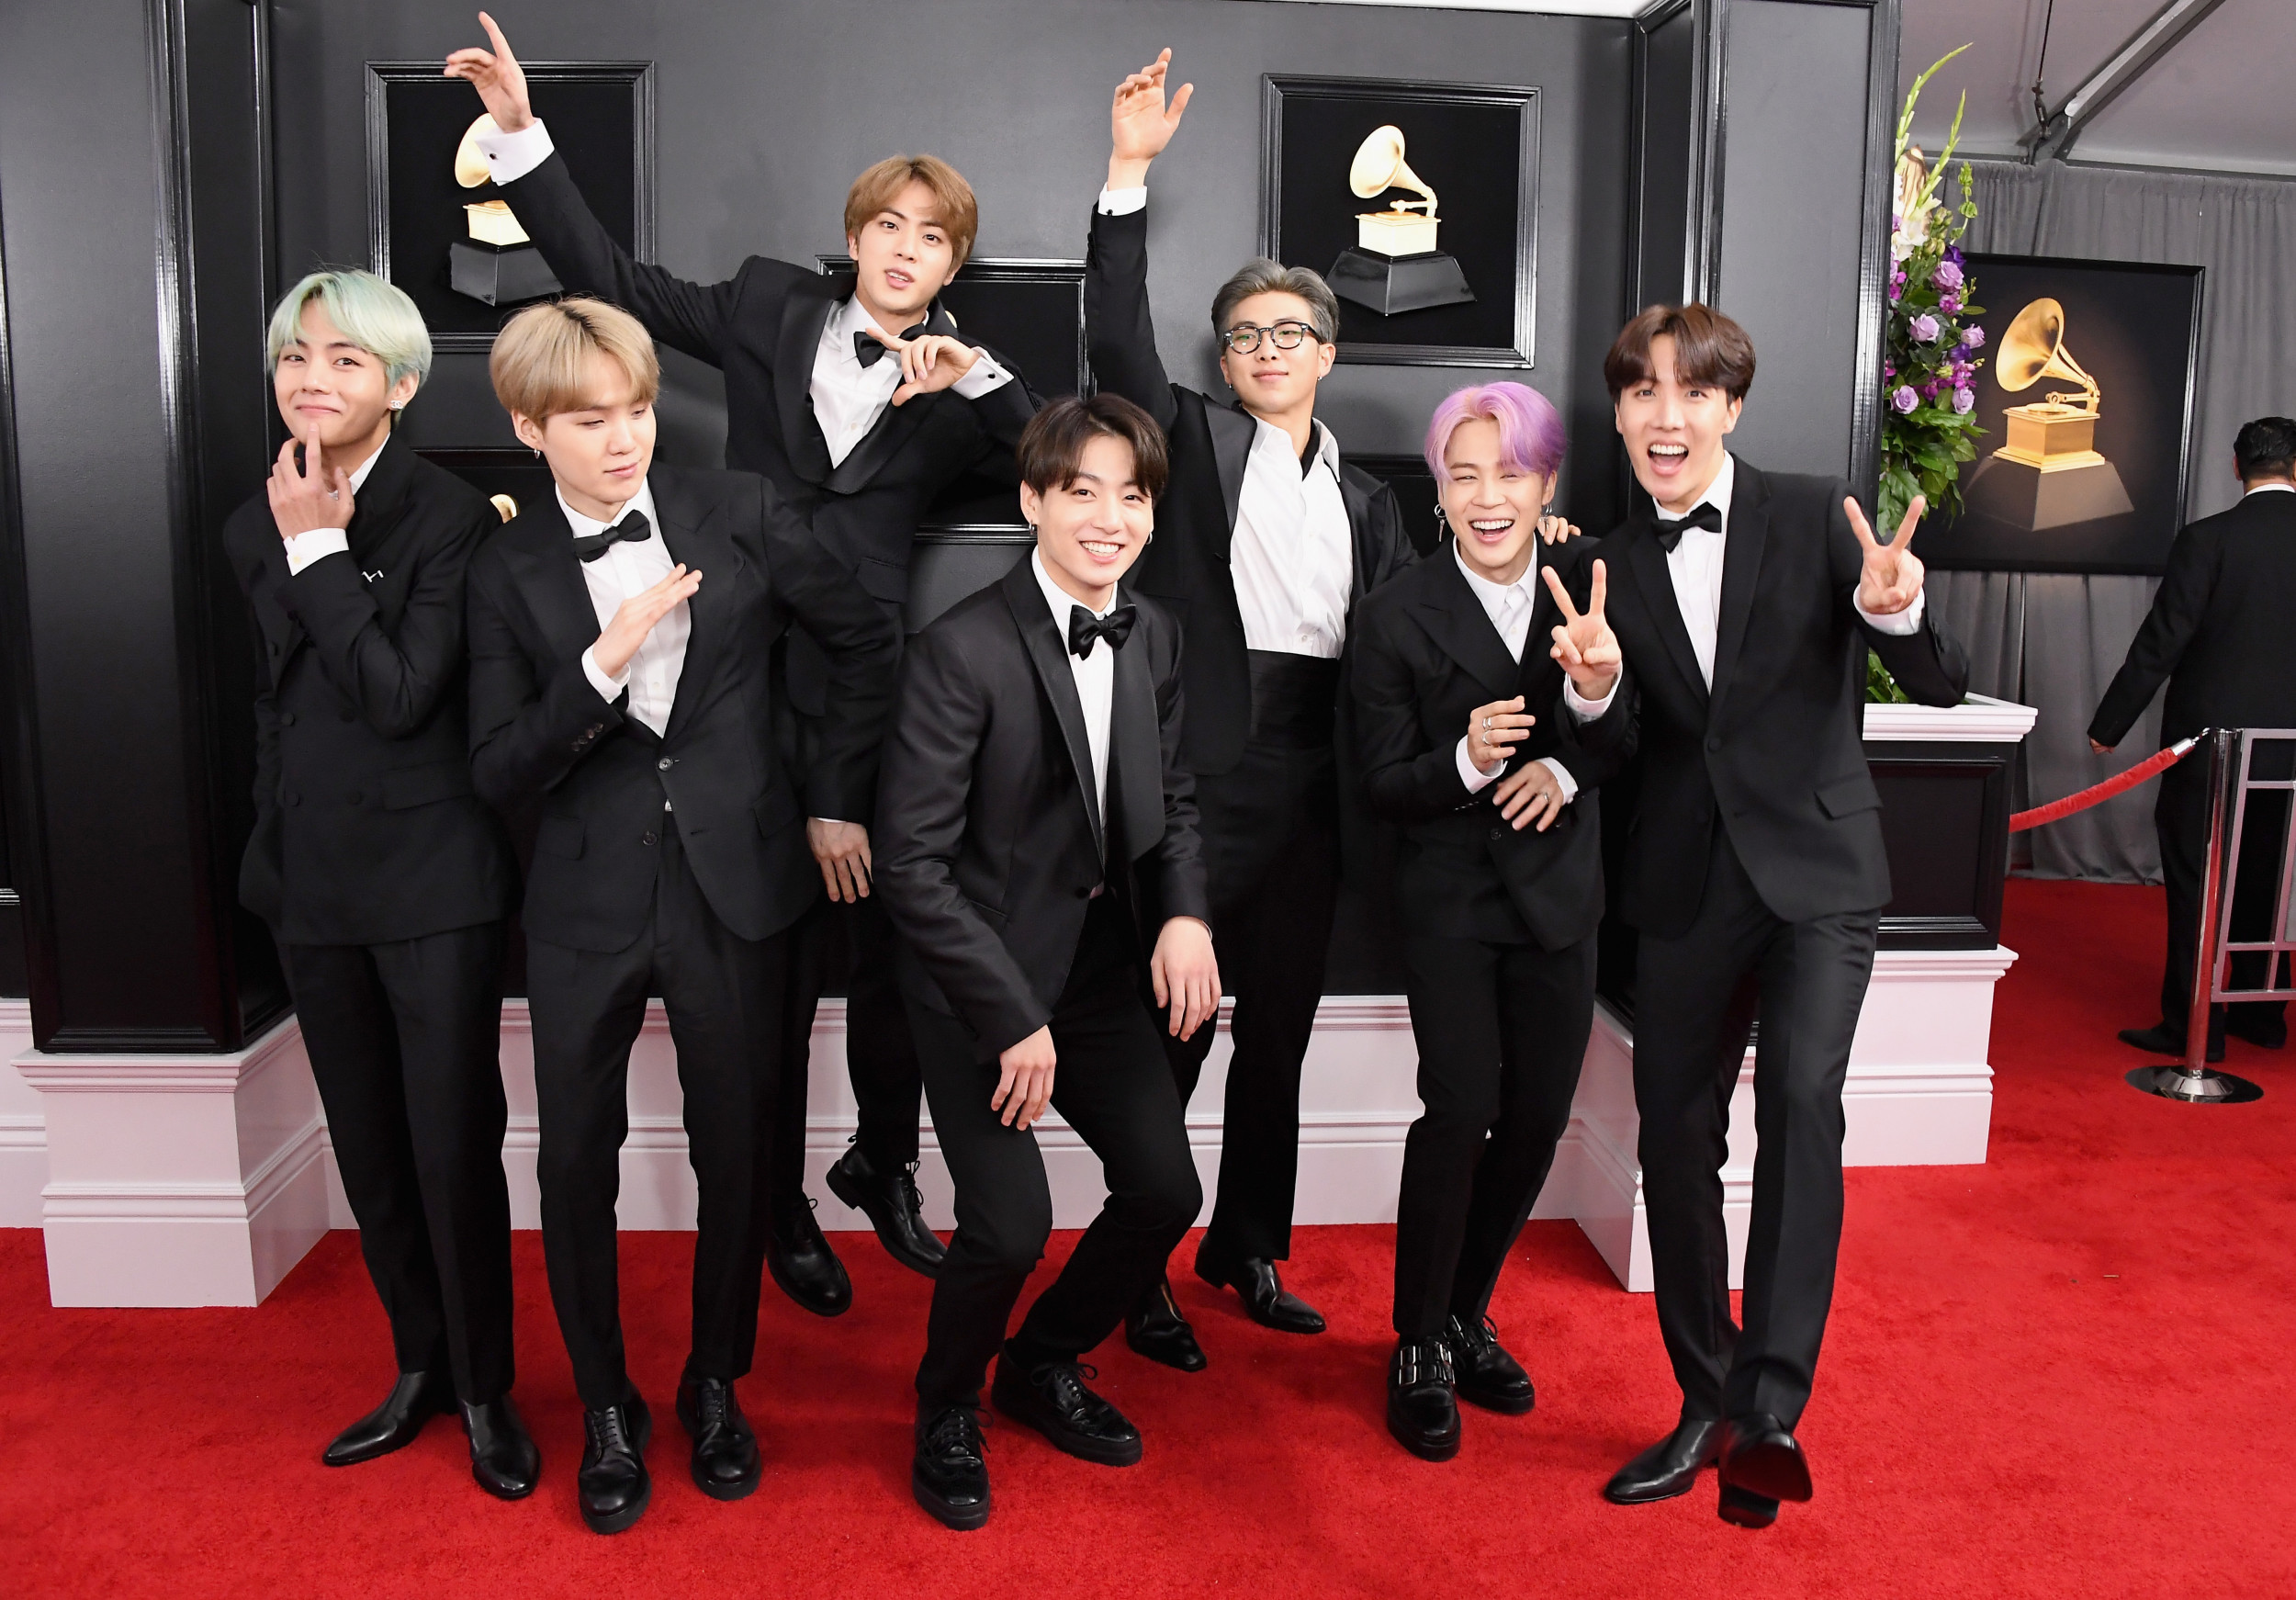 grammys 2020 nominations snubs fans react as bts taylor swift halsey miss out grammys 2020 nominations snubs fans